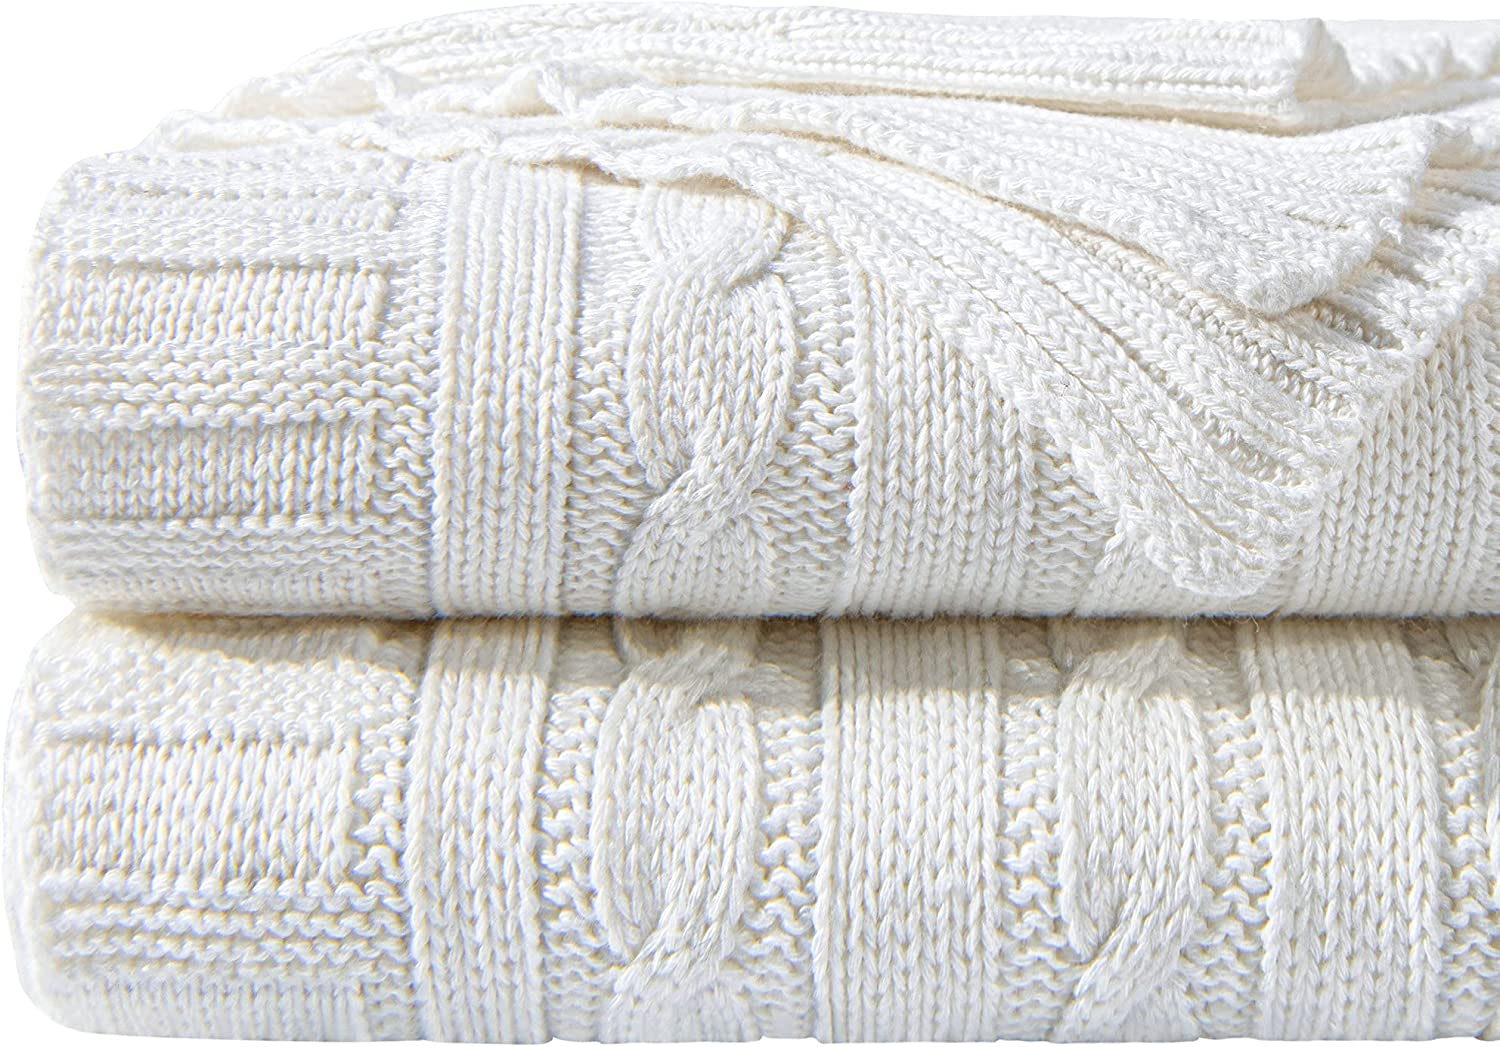 NTBAY Cotton Cable Brand new Knit Throw Super Soft Multi Warm Color Max 69% OFF Blank